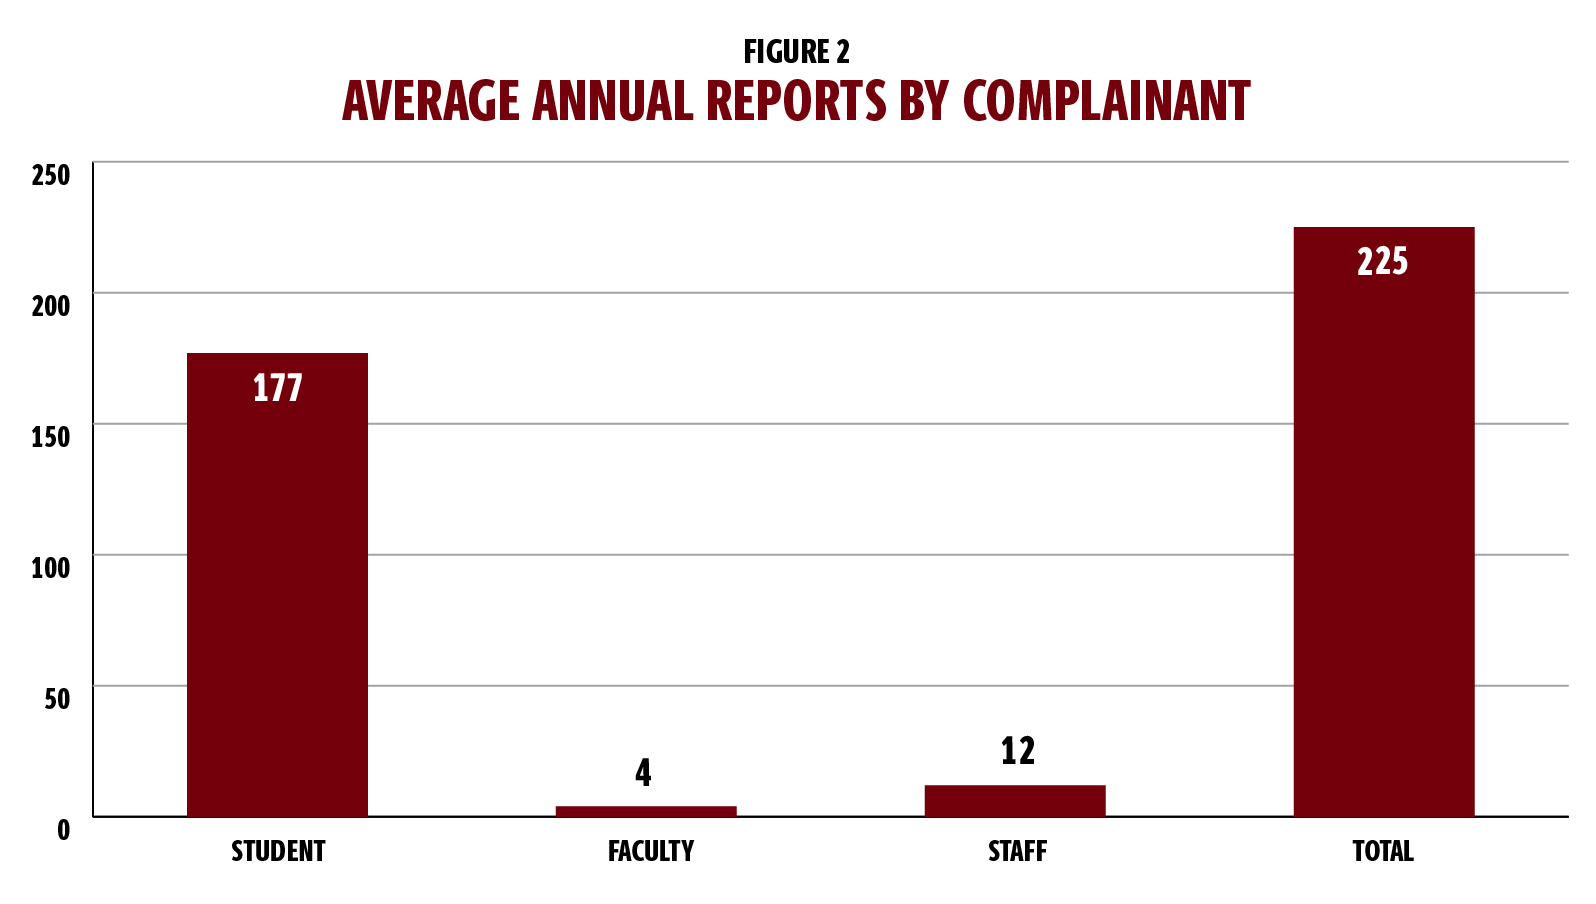 Figure 2 is a bar graph showing the average annual reports by complainant. The averages are based on data from 2016-2019. Data from 2020 were excluded because the pandemic contributed to an artificially low count. The bar graphs represent student, faculty and staff complainants, with the final bar representing the total average number of complainants. From left, the bars represent 177 student complainants; four faculty complainants; and 12 staff complainants. The total number is 225 complainants.